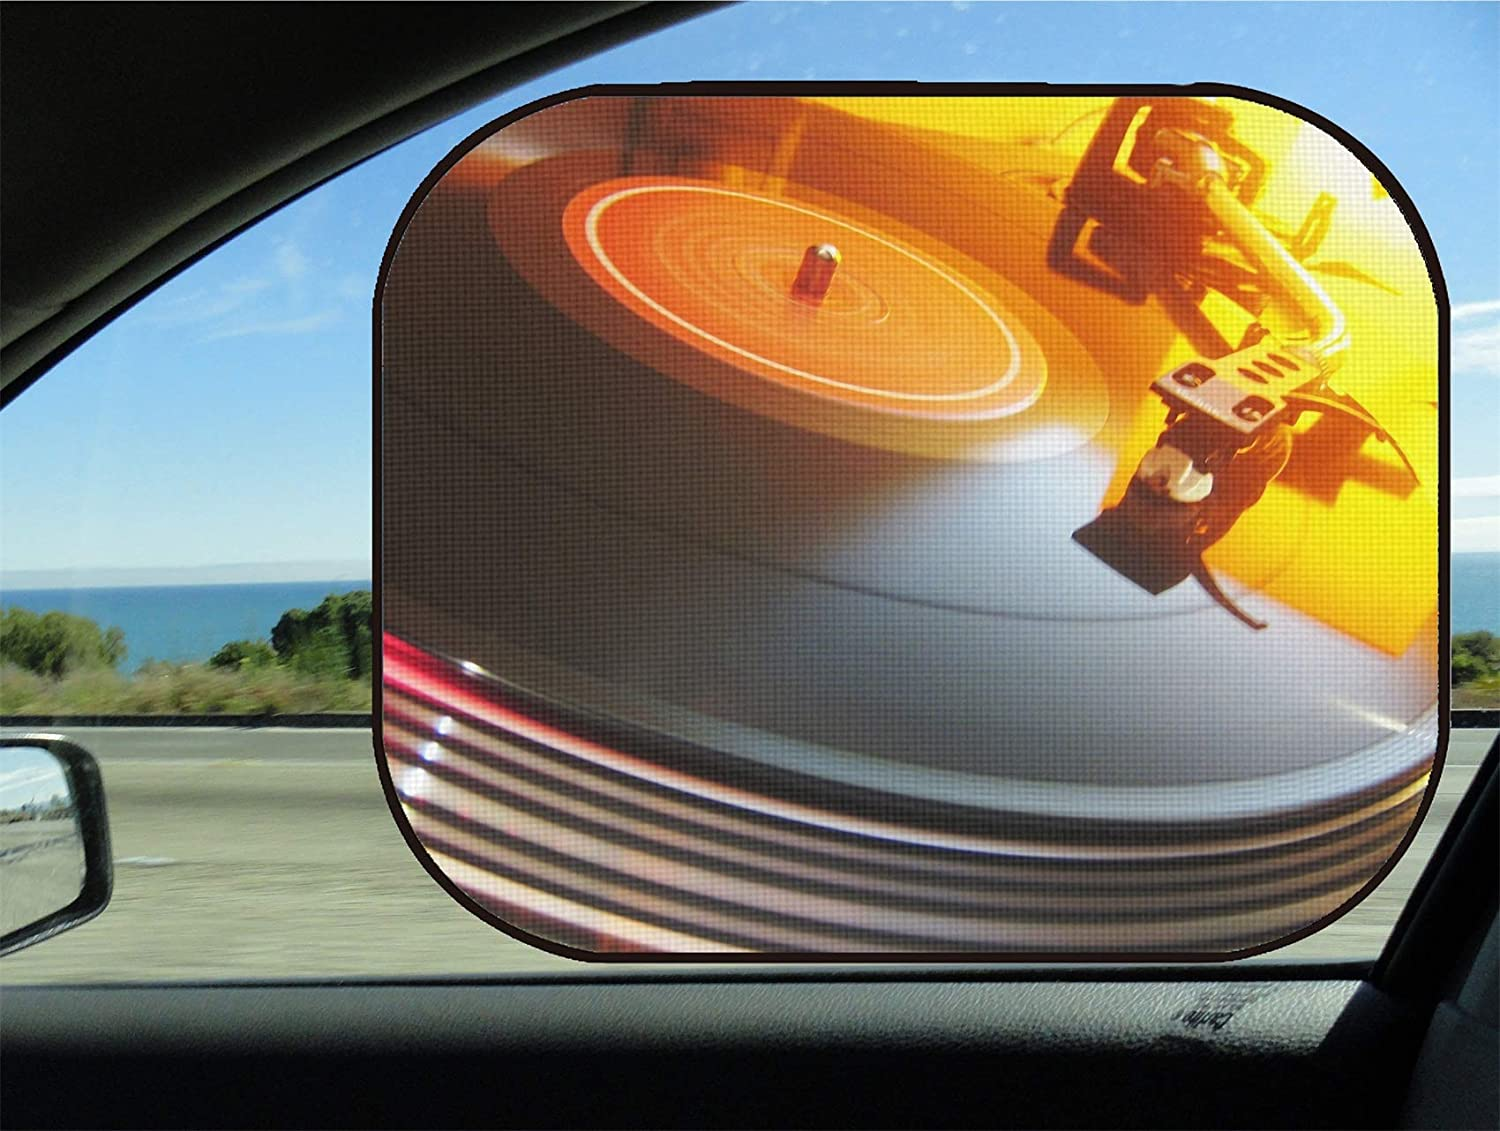 MSD Car Sun Shade for Side Window UV Protector for Baby and Pet Block Sunlight Image of Vinyl Music Record Turntable Disco Sound Retro Audio disc Player Black Vintage dj Party Needle